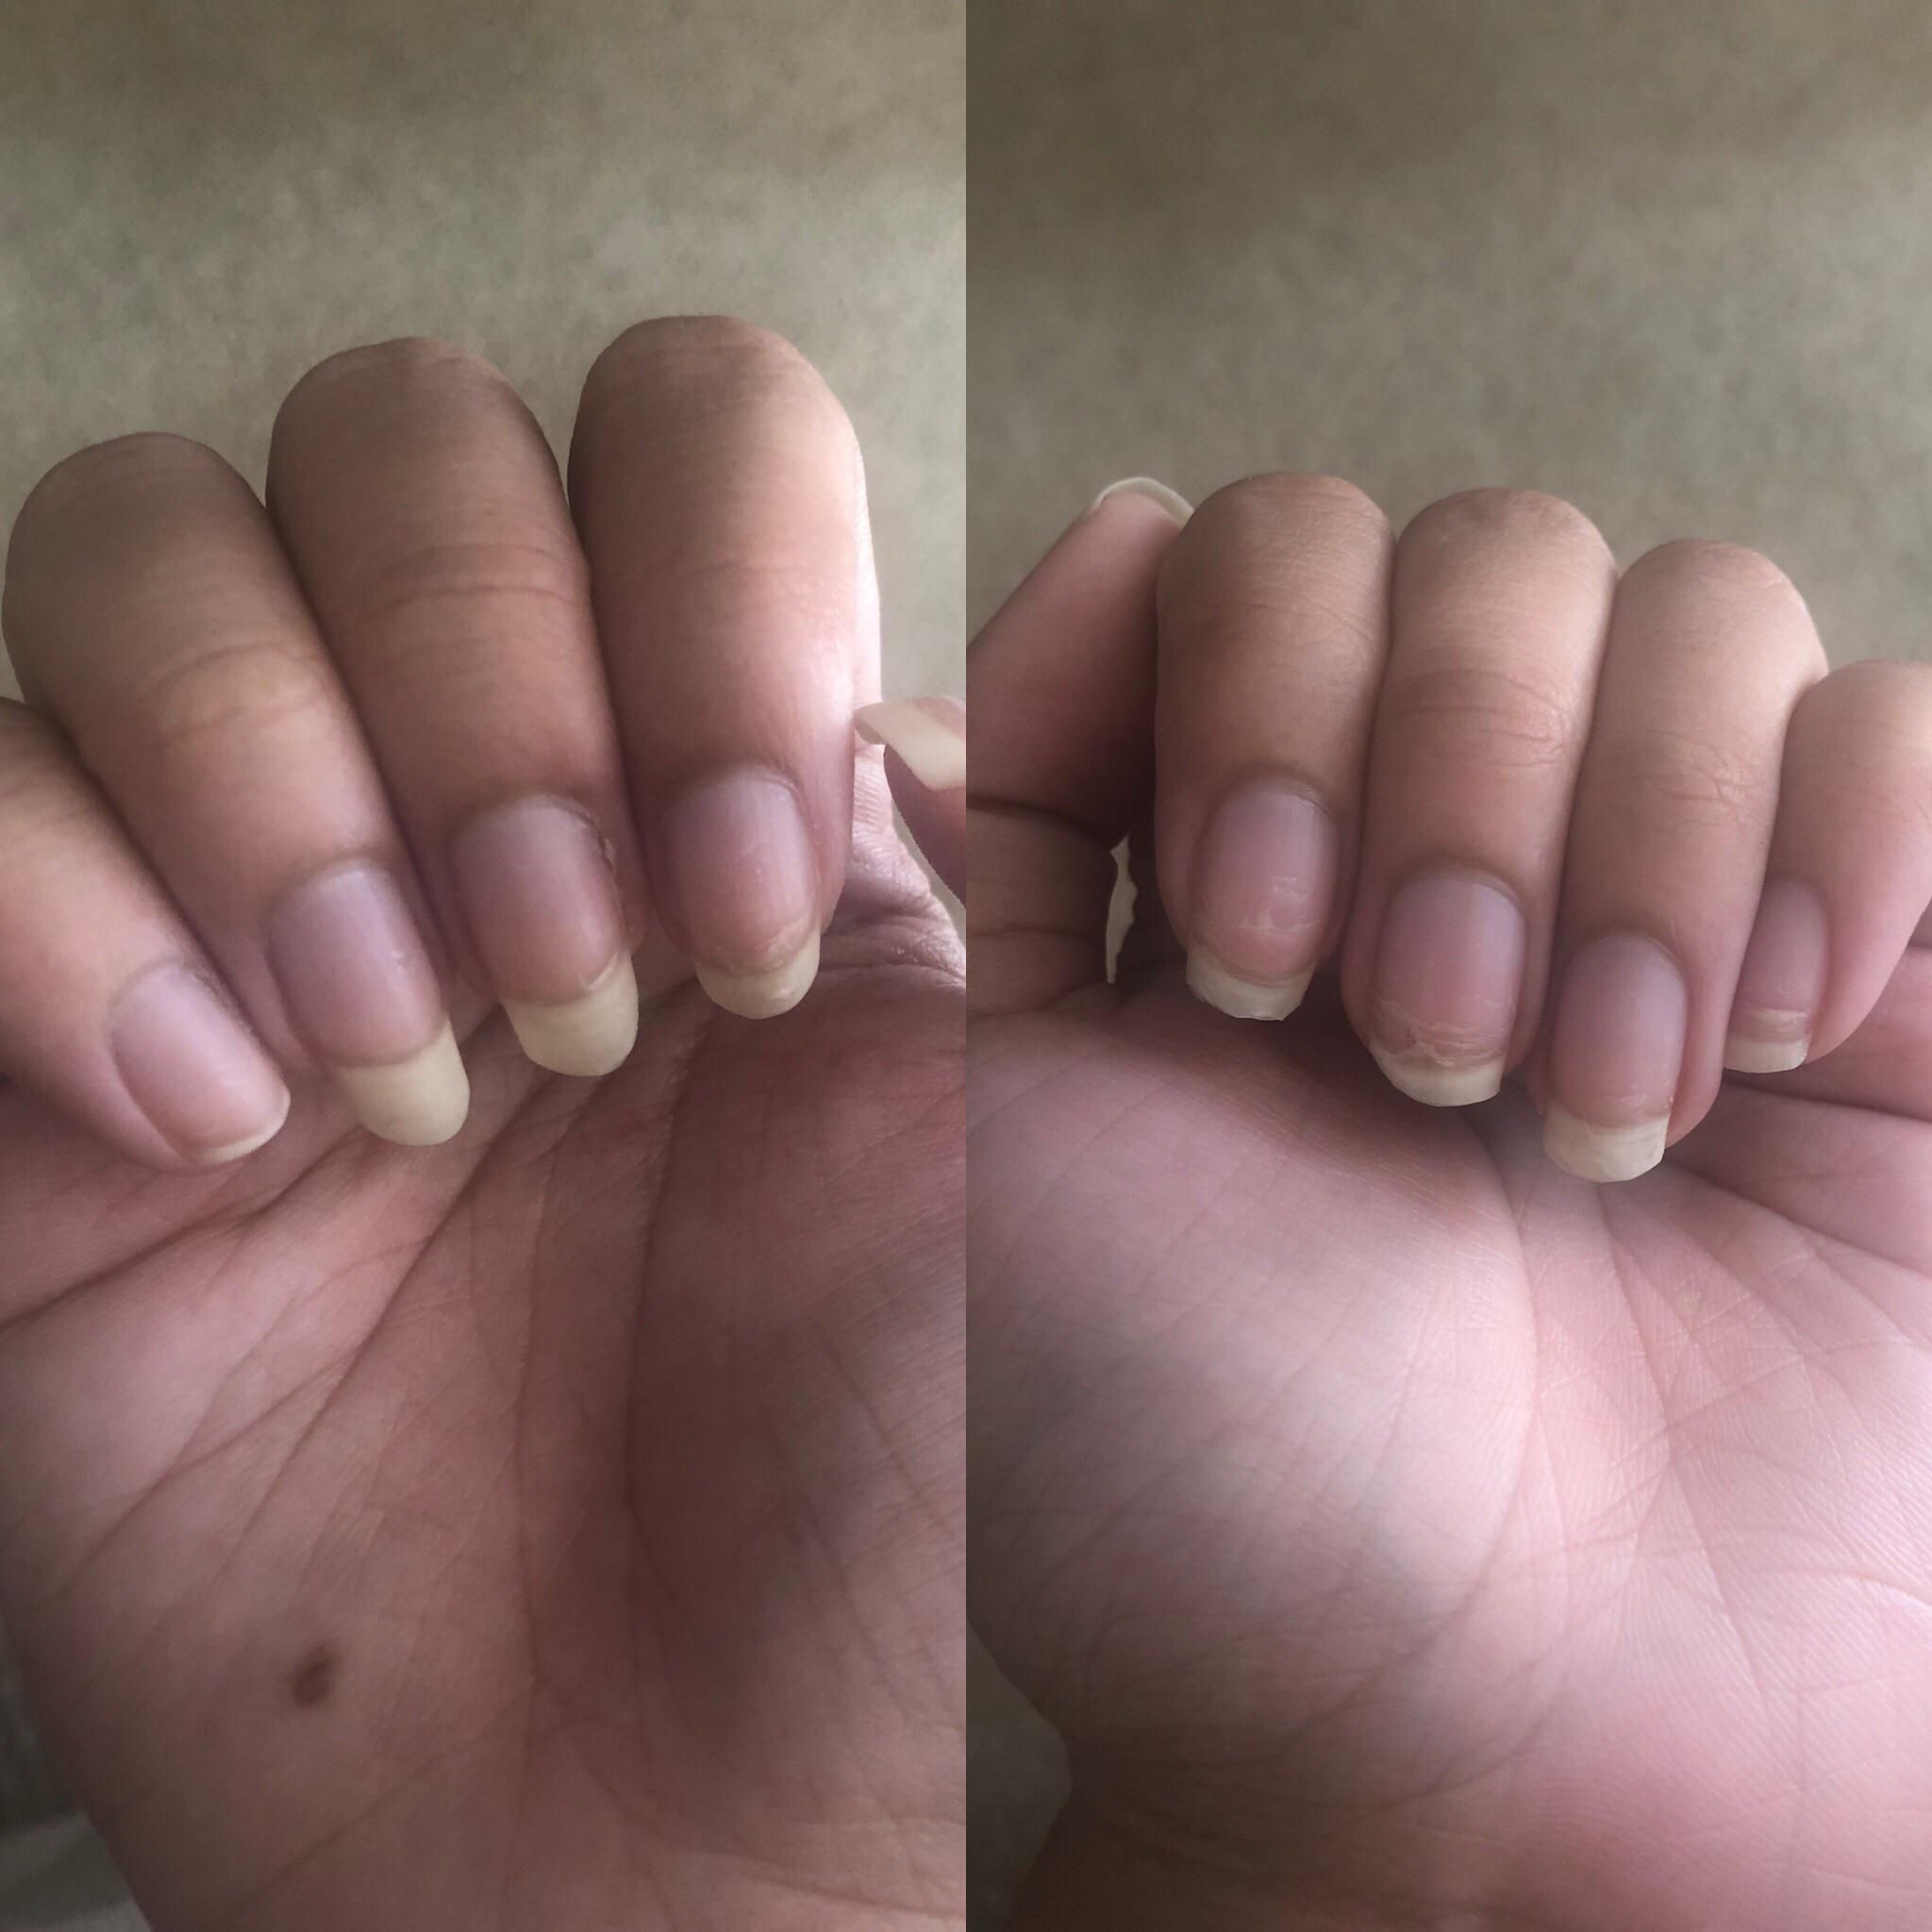 Got my nails done where gel was used for the glue and fake